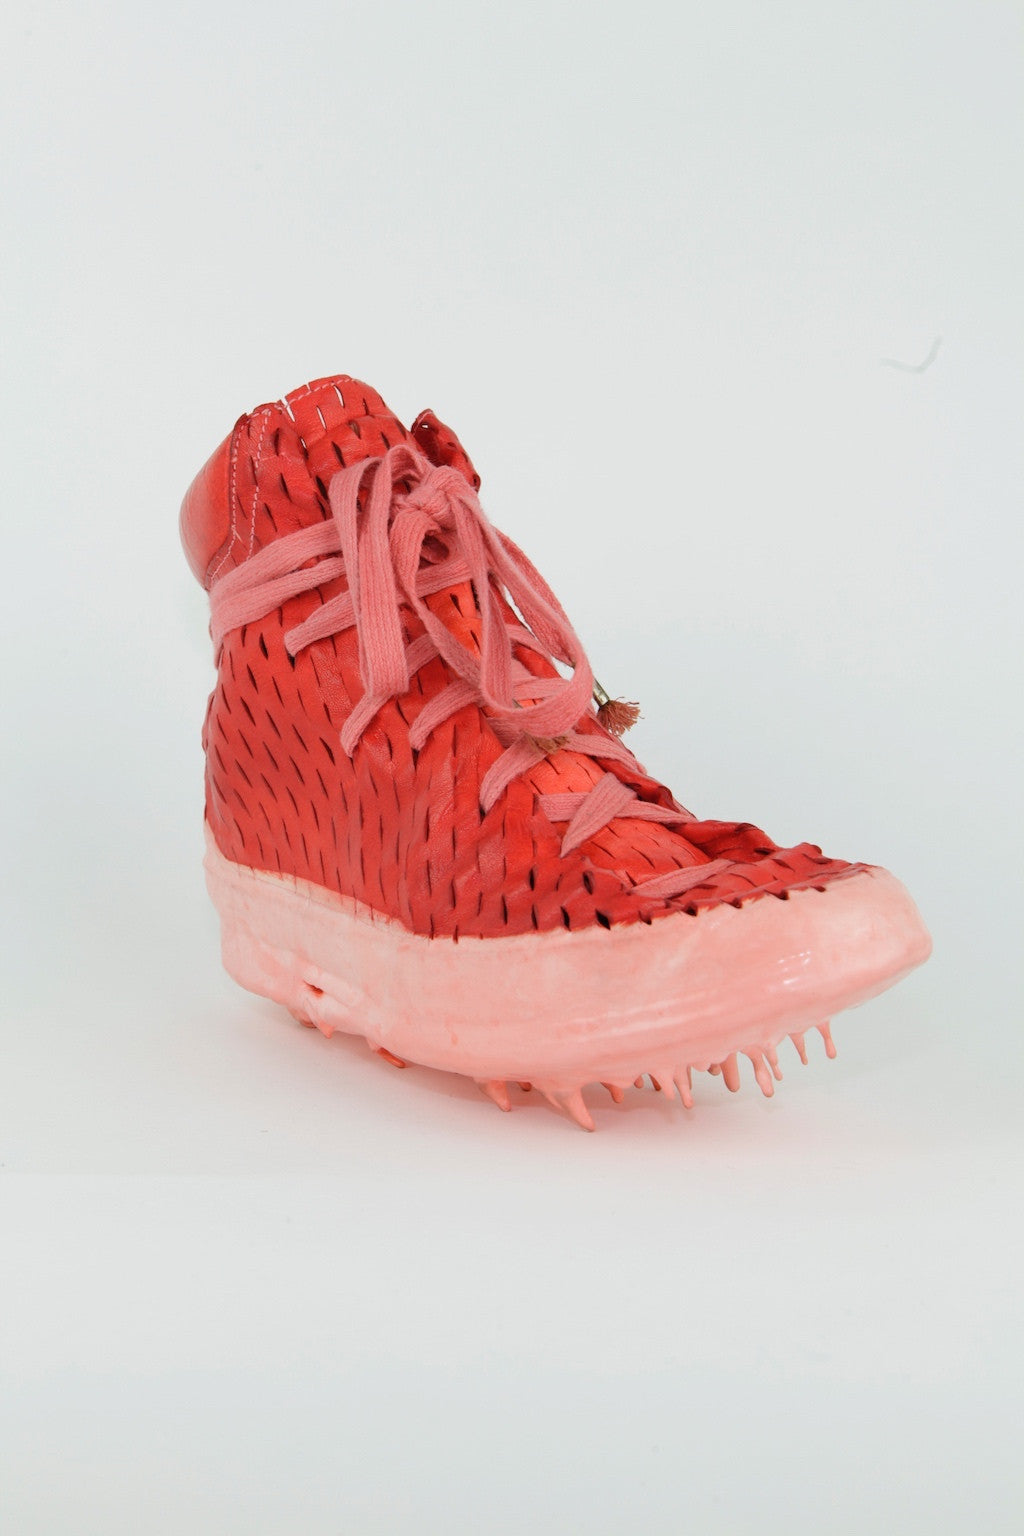 G.D. one piece laceable dripped sneakers